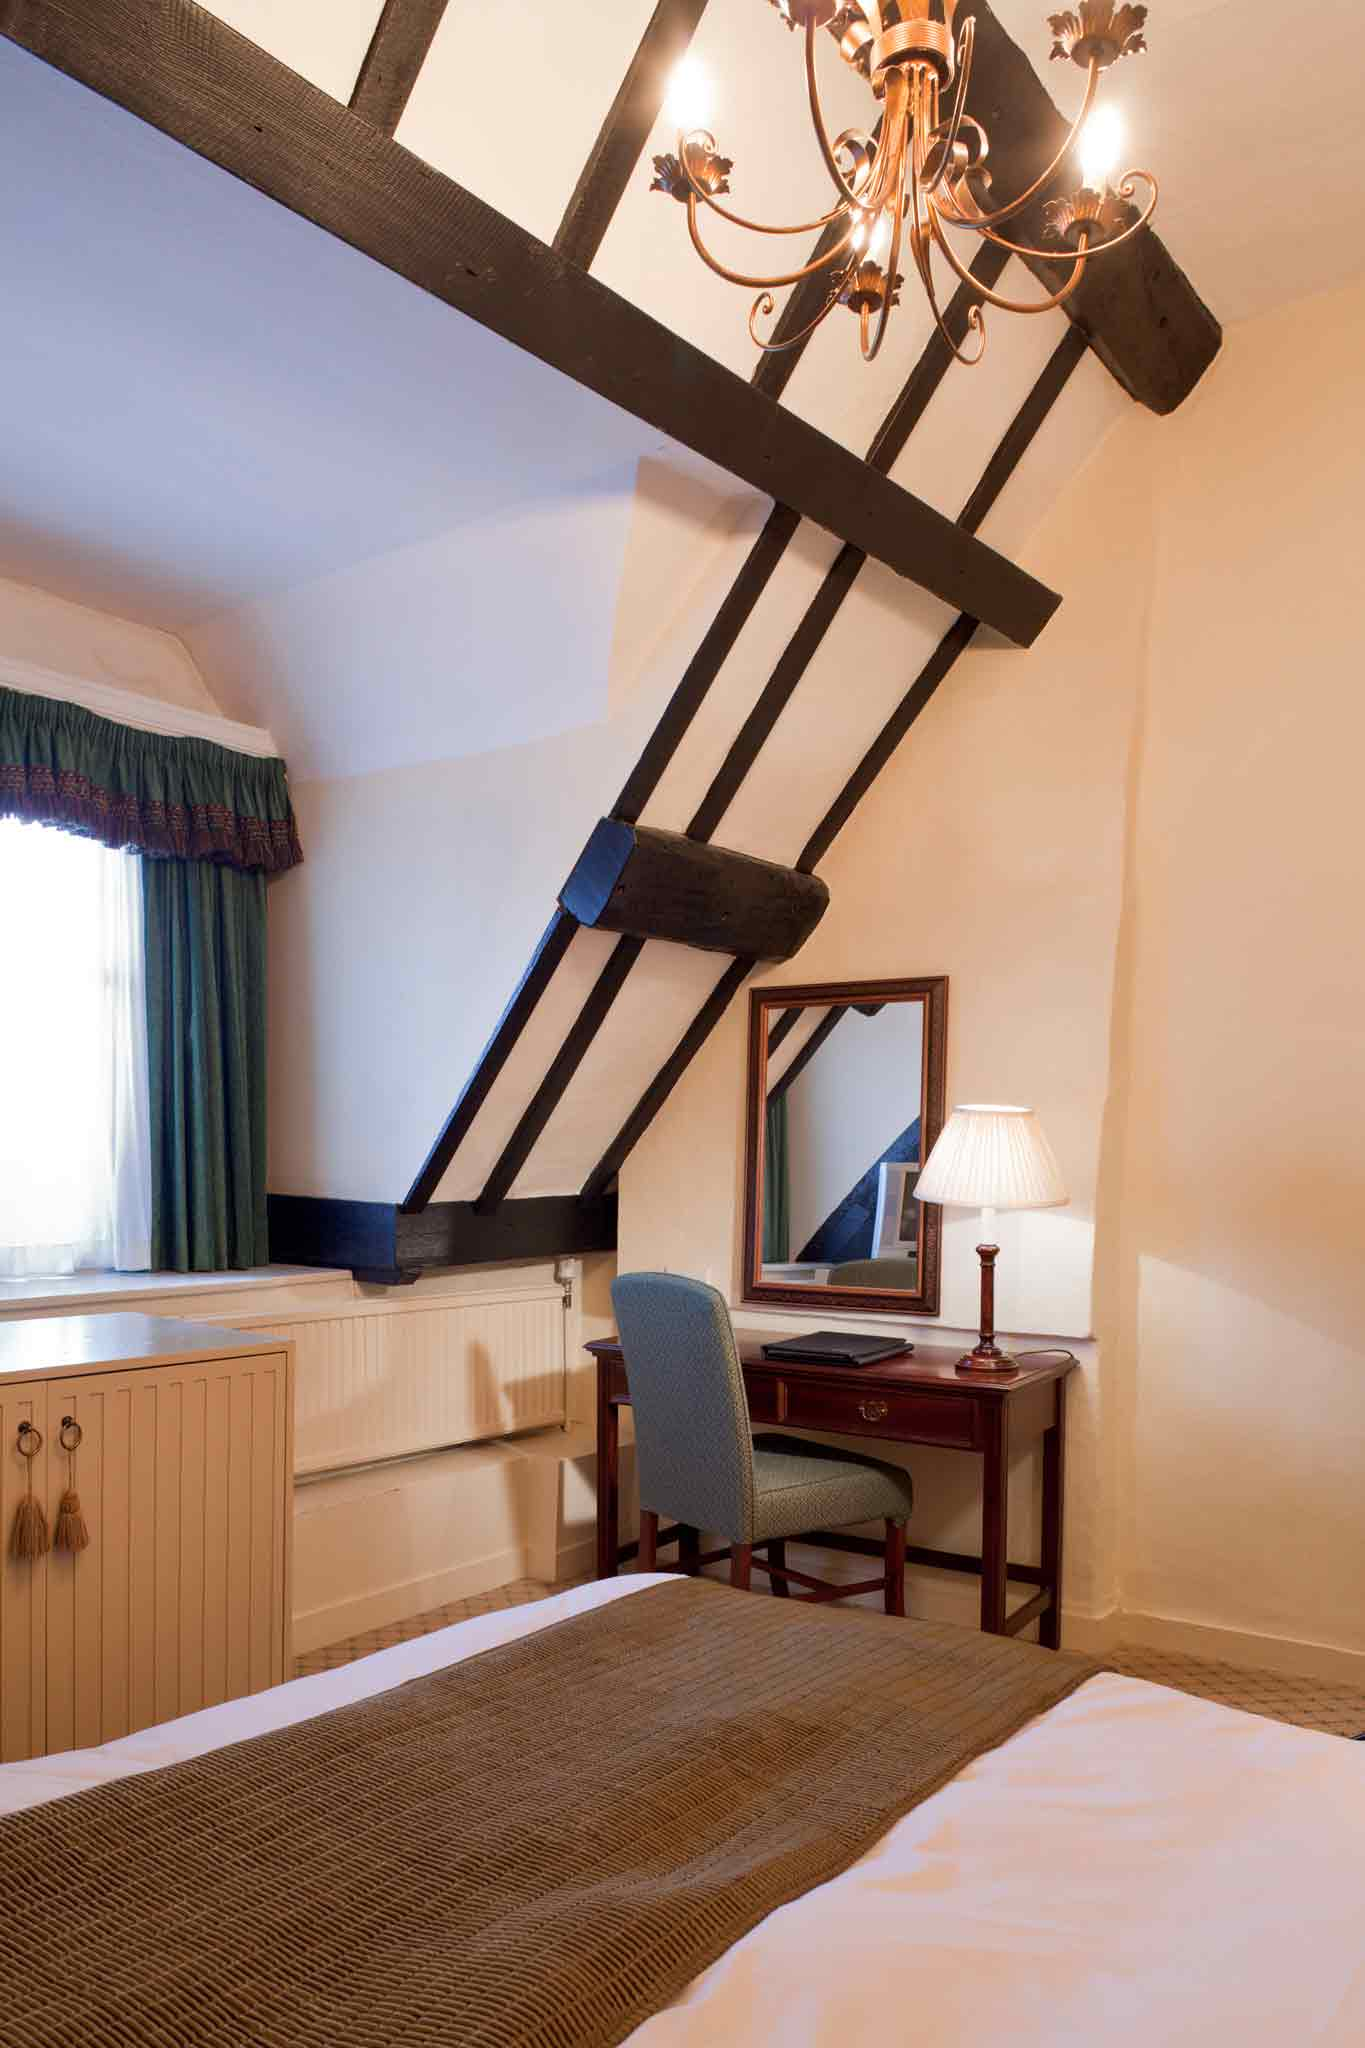 Hotel Mercure Whately Hall Banbury View of room